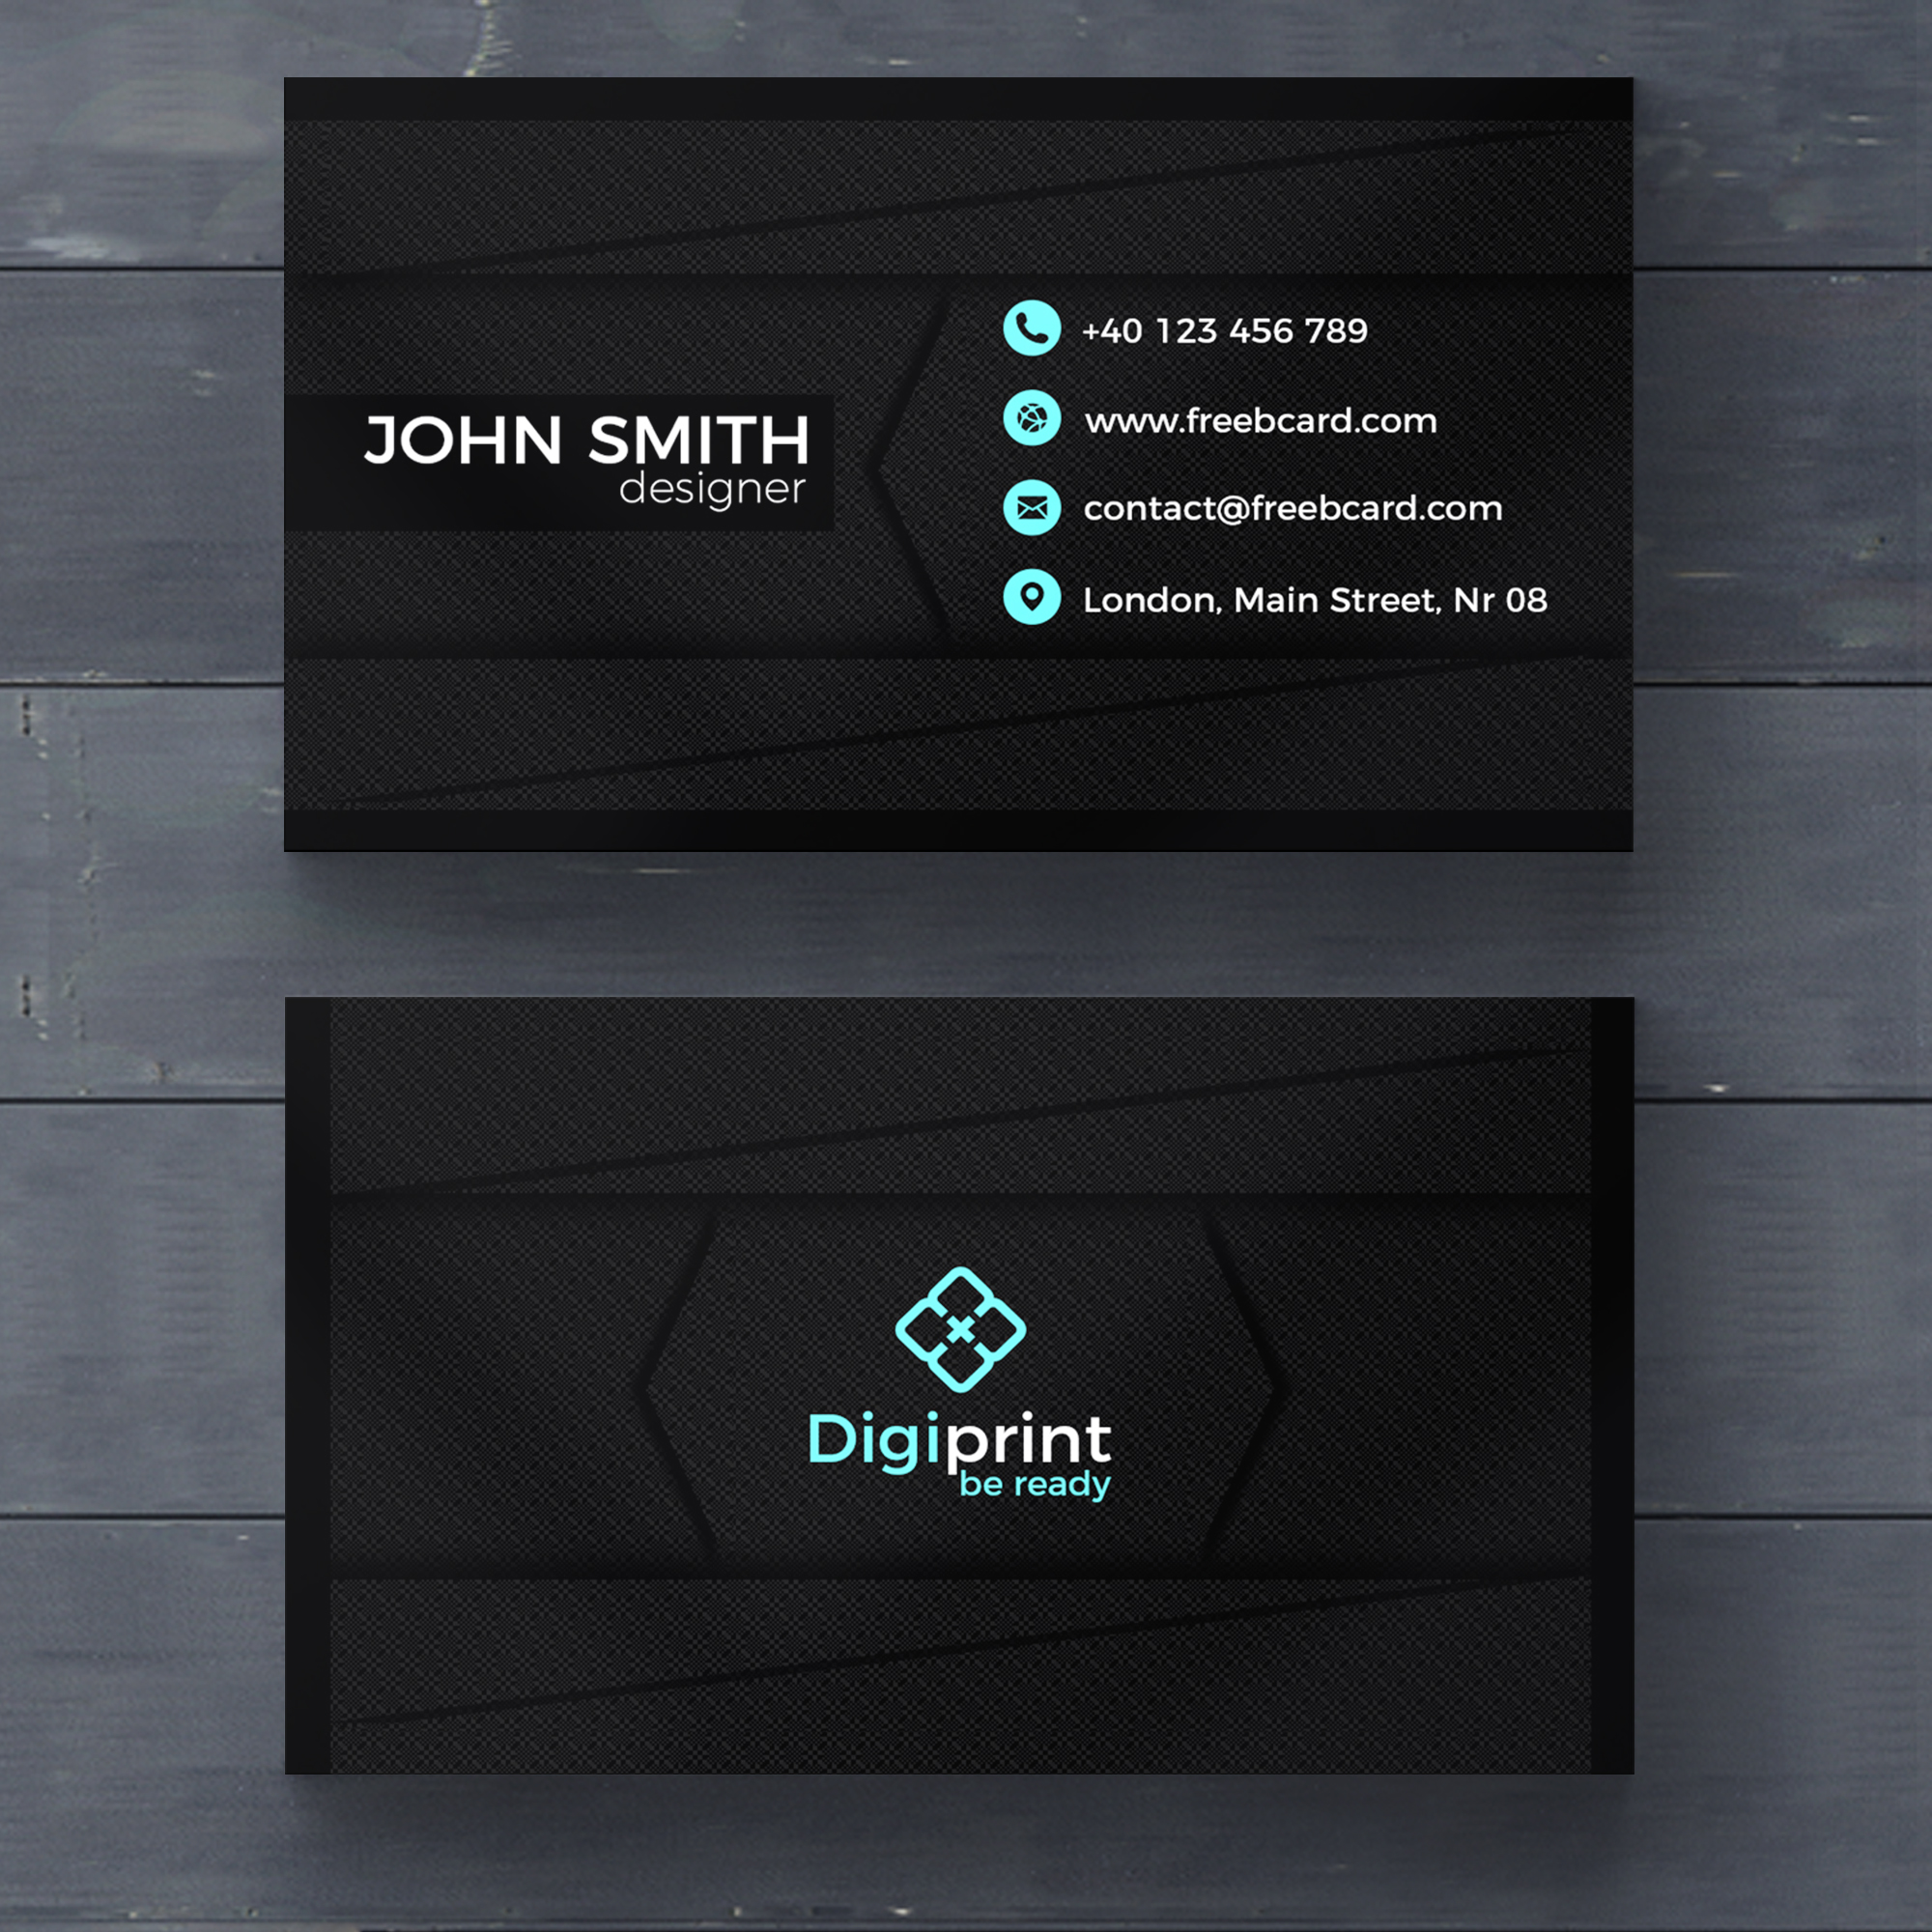 business card presentation template psd - cards psd 5 700 free psd files